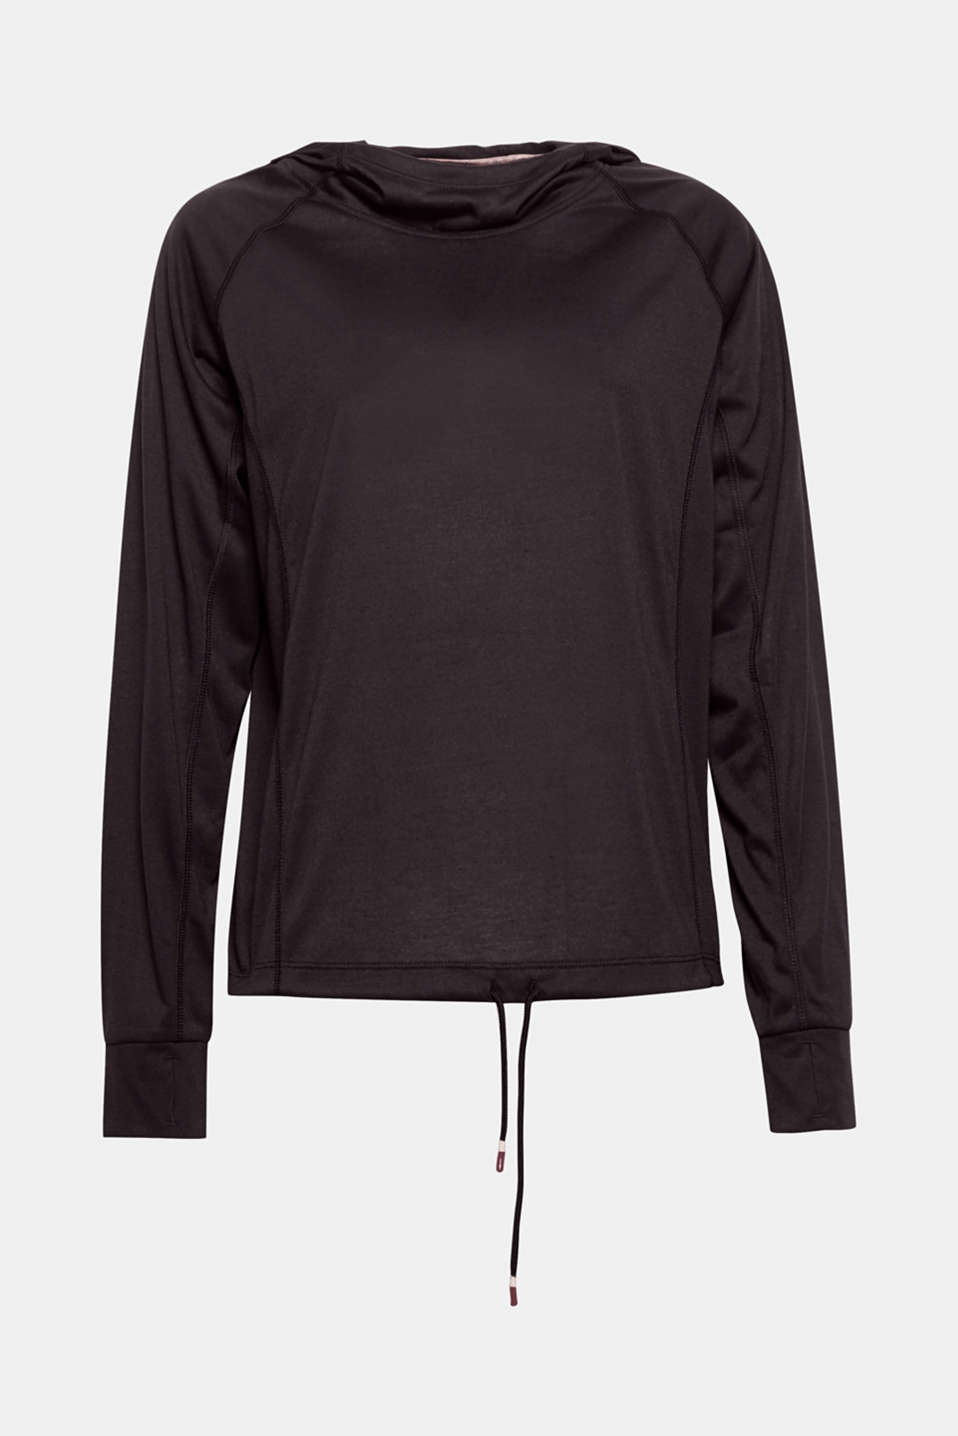 Let's go! This lightweight hoodie with an E-DRY finish and a drawstring hem is perfect for outdoor activities!